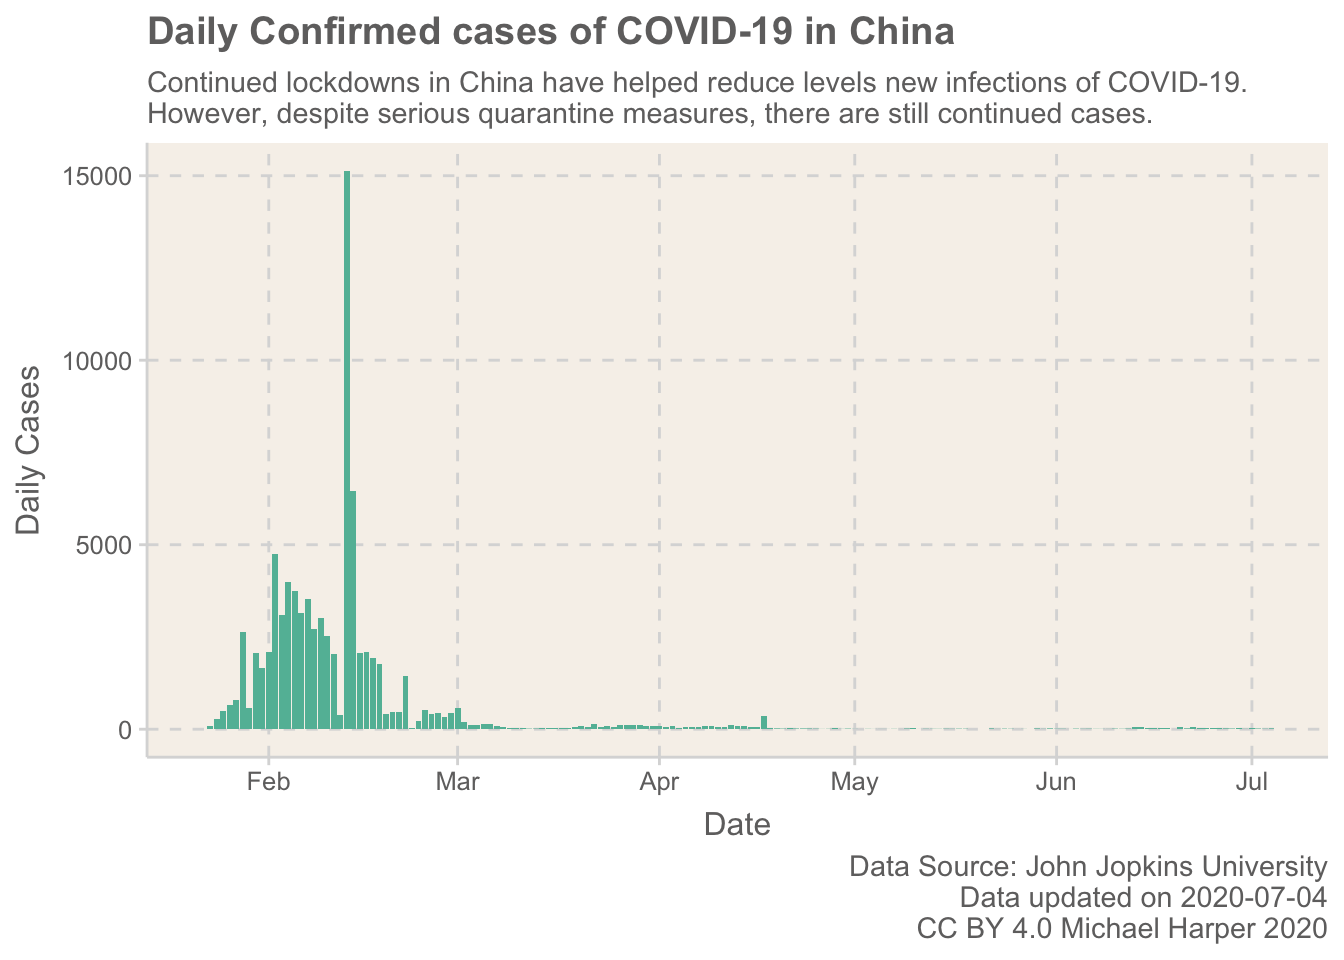 Daily confirmed cases of COVID-19 in China